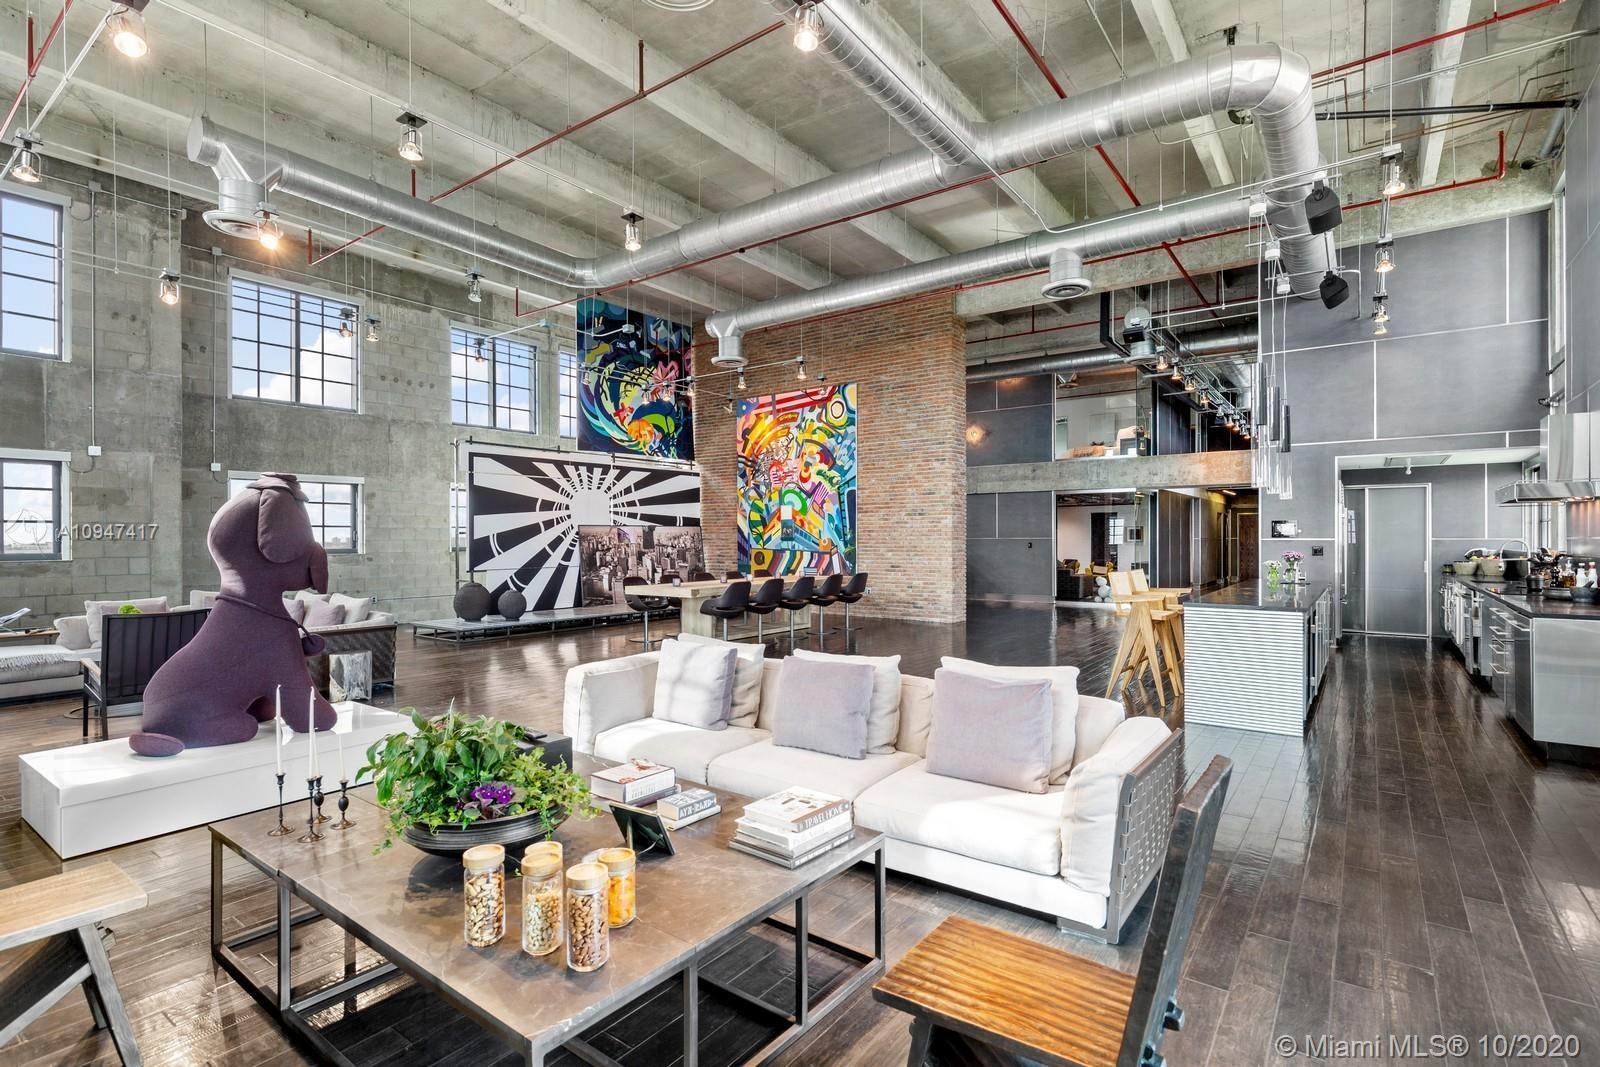 MANHATTAN MEETS MIAMI! NY style luxury loft living in the heart of Downtown Miami. Cutting-edge 7,11